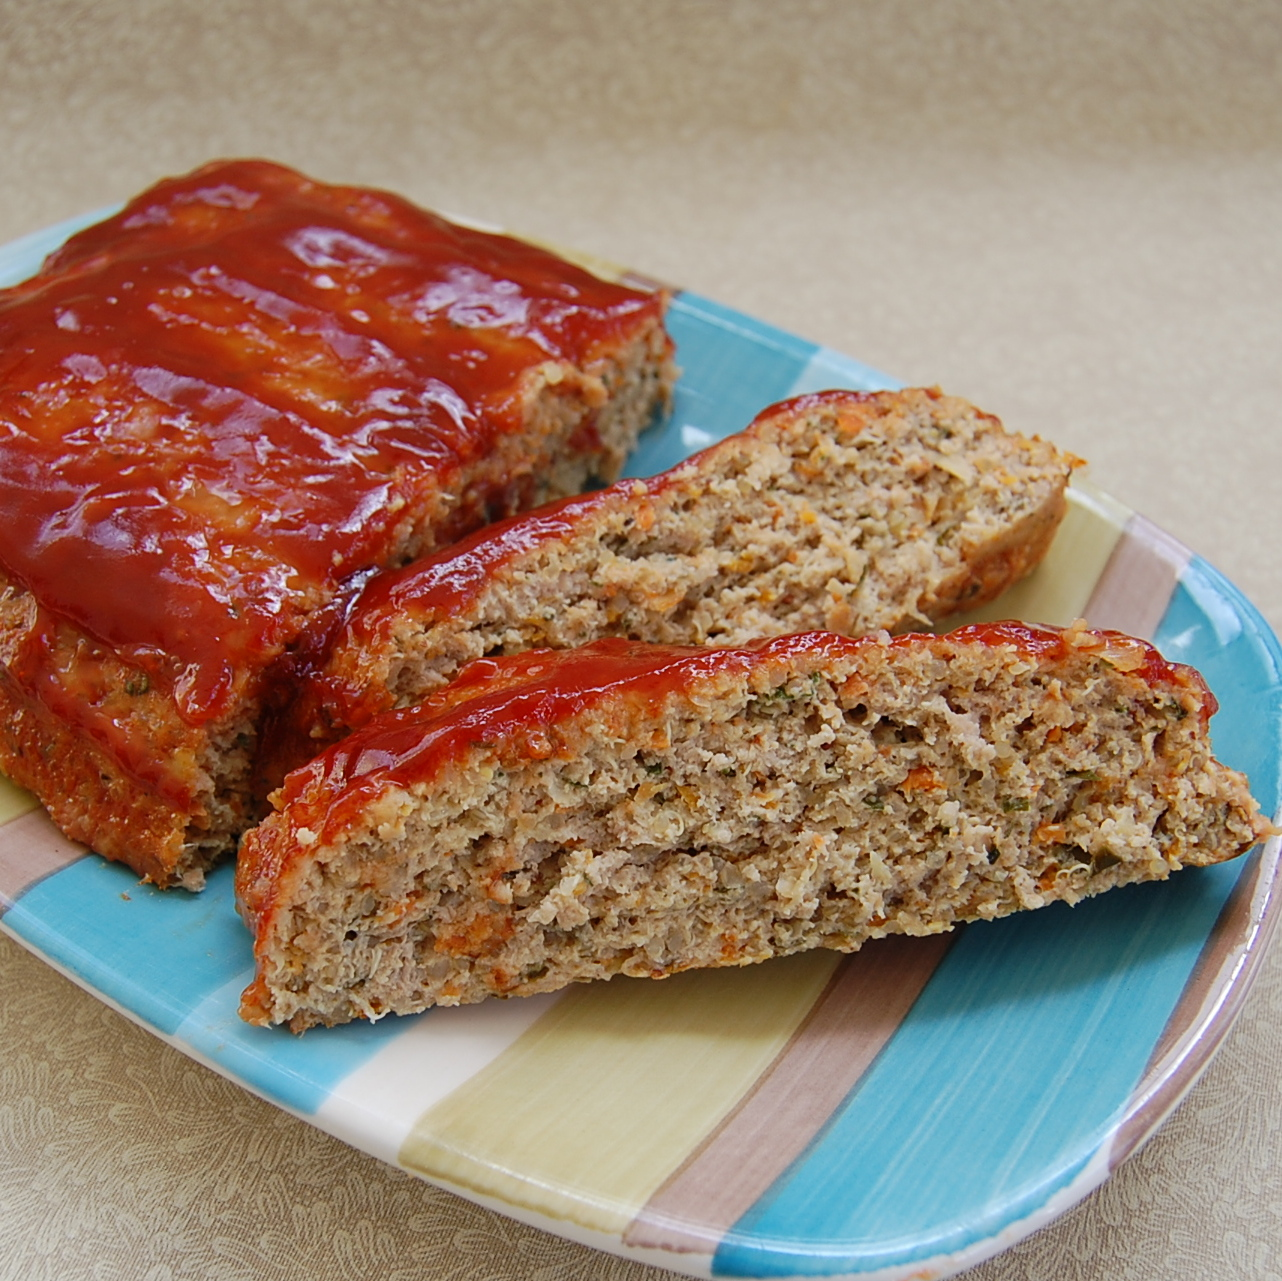 ... gluten free crepes dive into gluten free dairy free meatloaf recipes 6